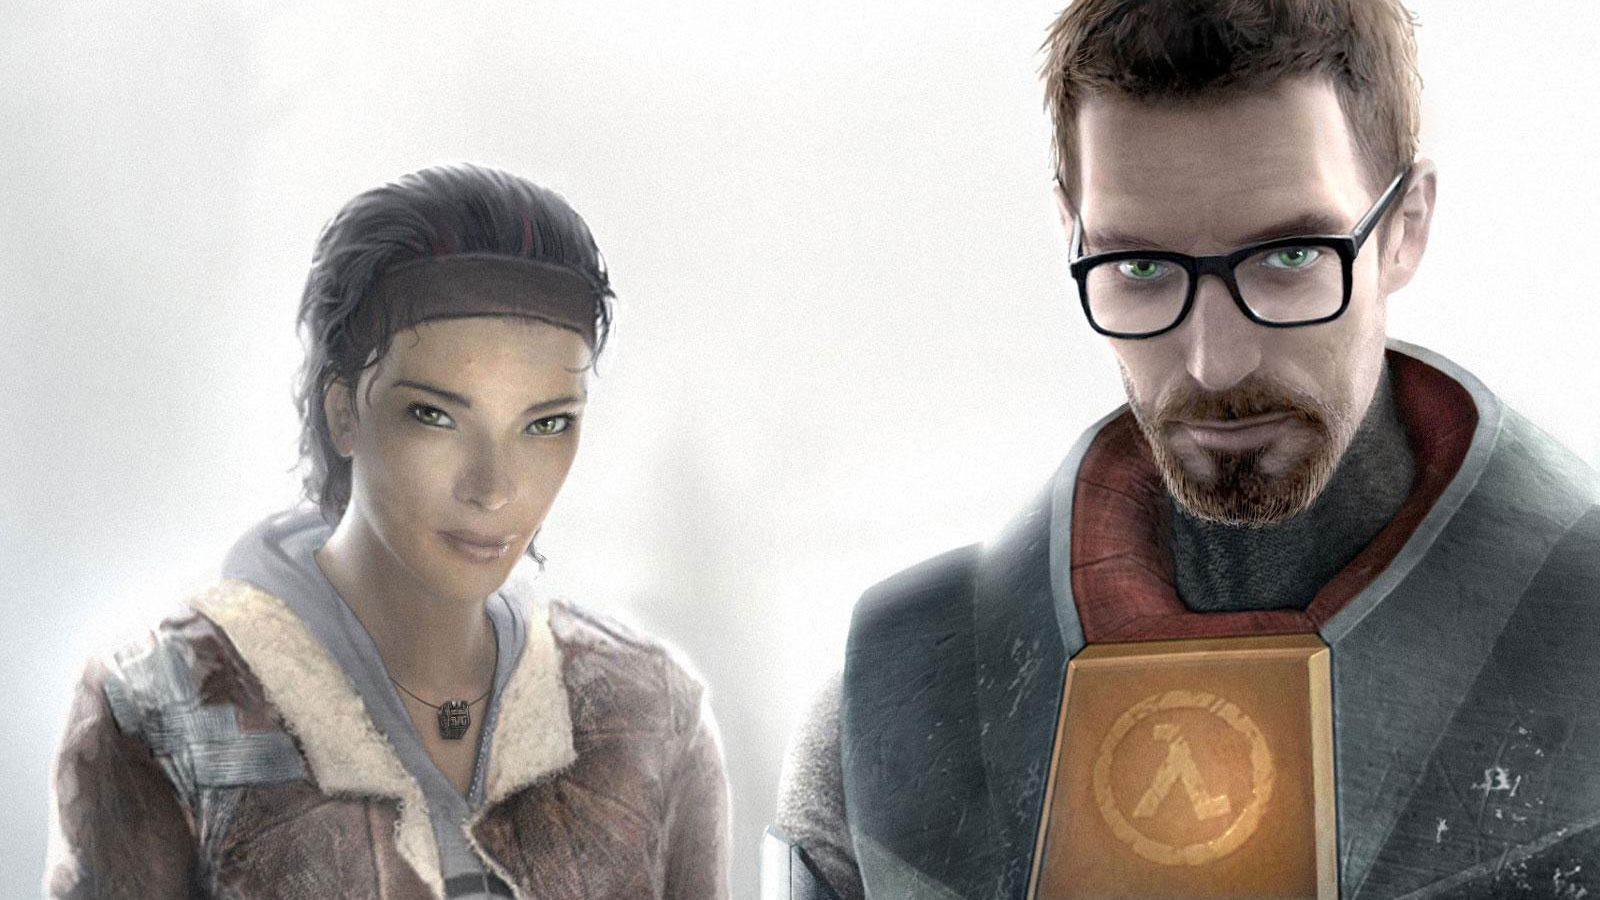 Half Life Let S Play Shows The Games Invisible Brilliance